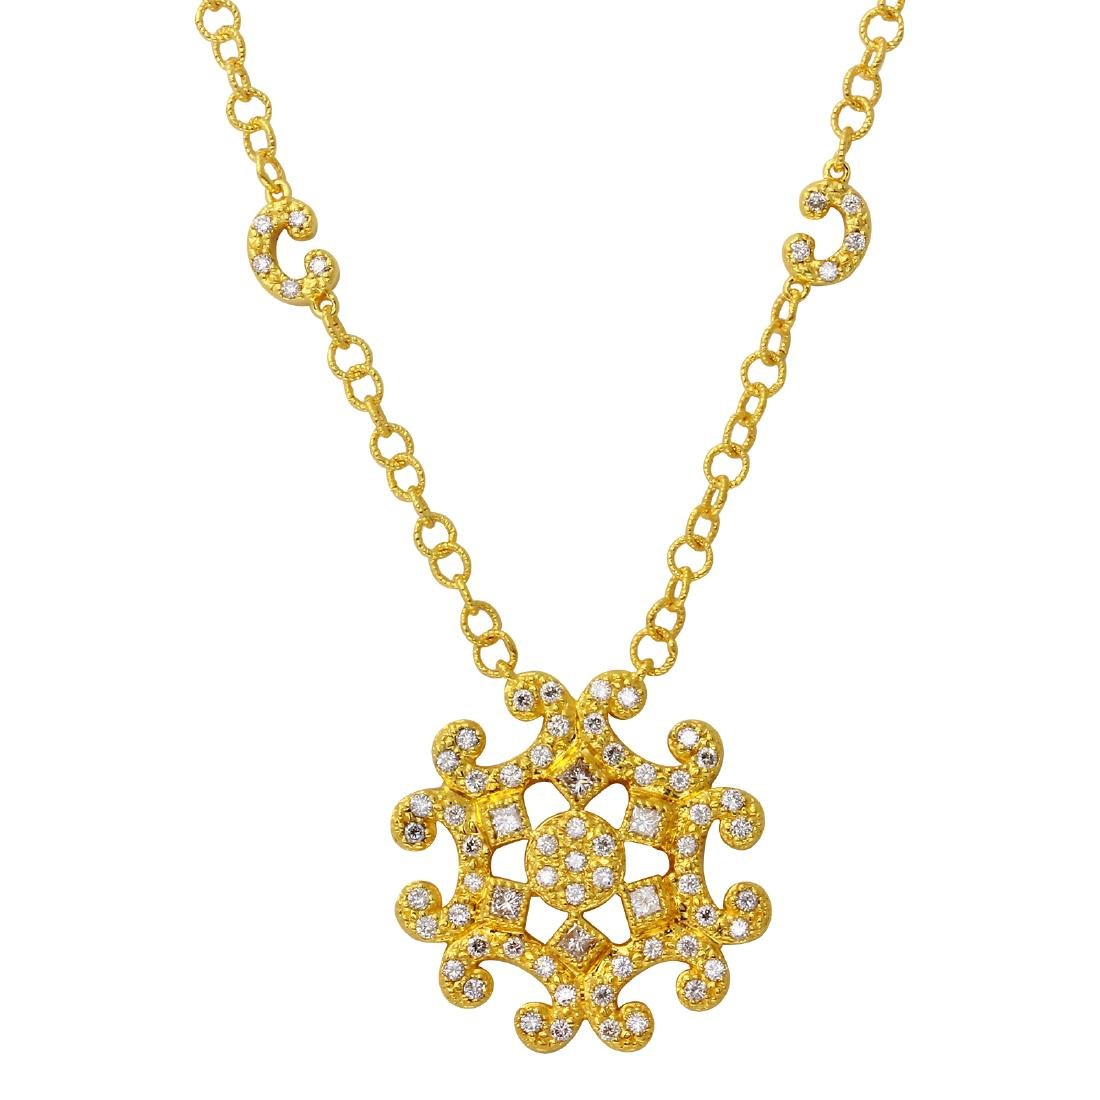 Philippe Charriol 18KT Yellow Gold Diamond Necklace